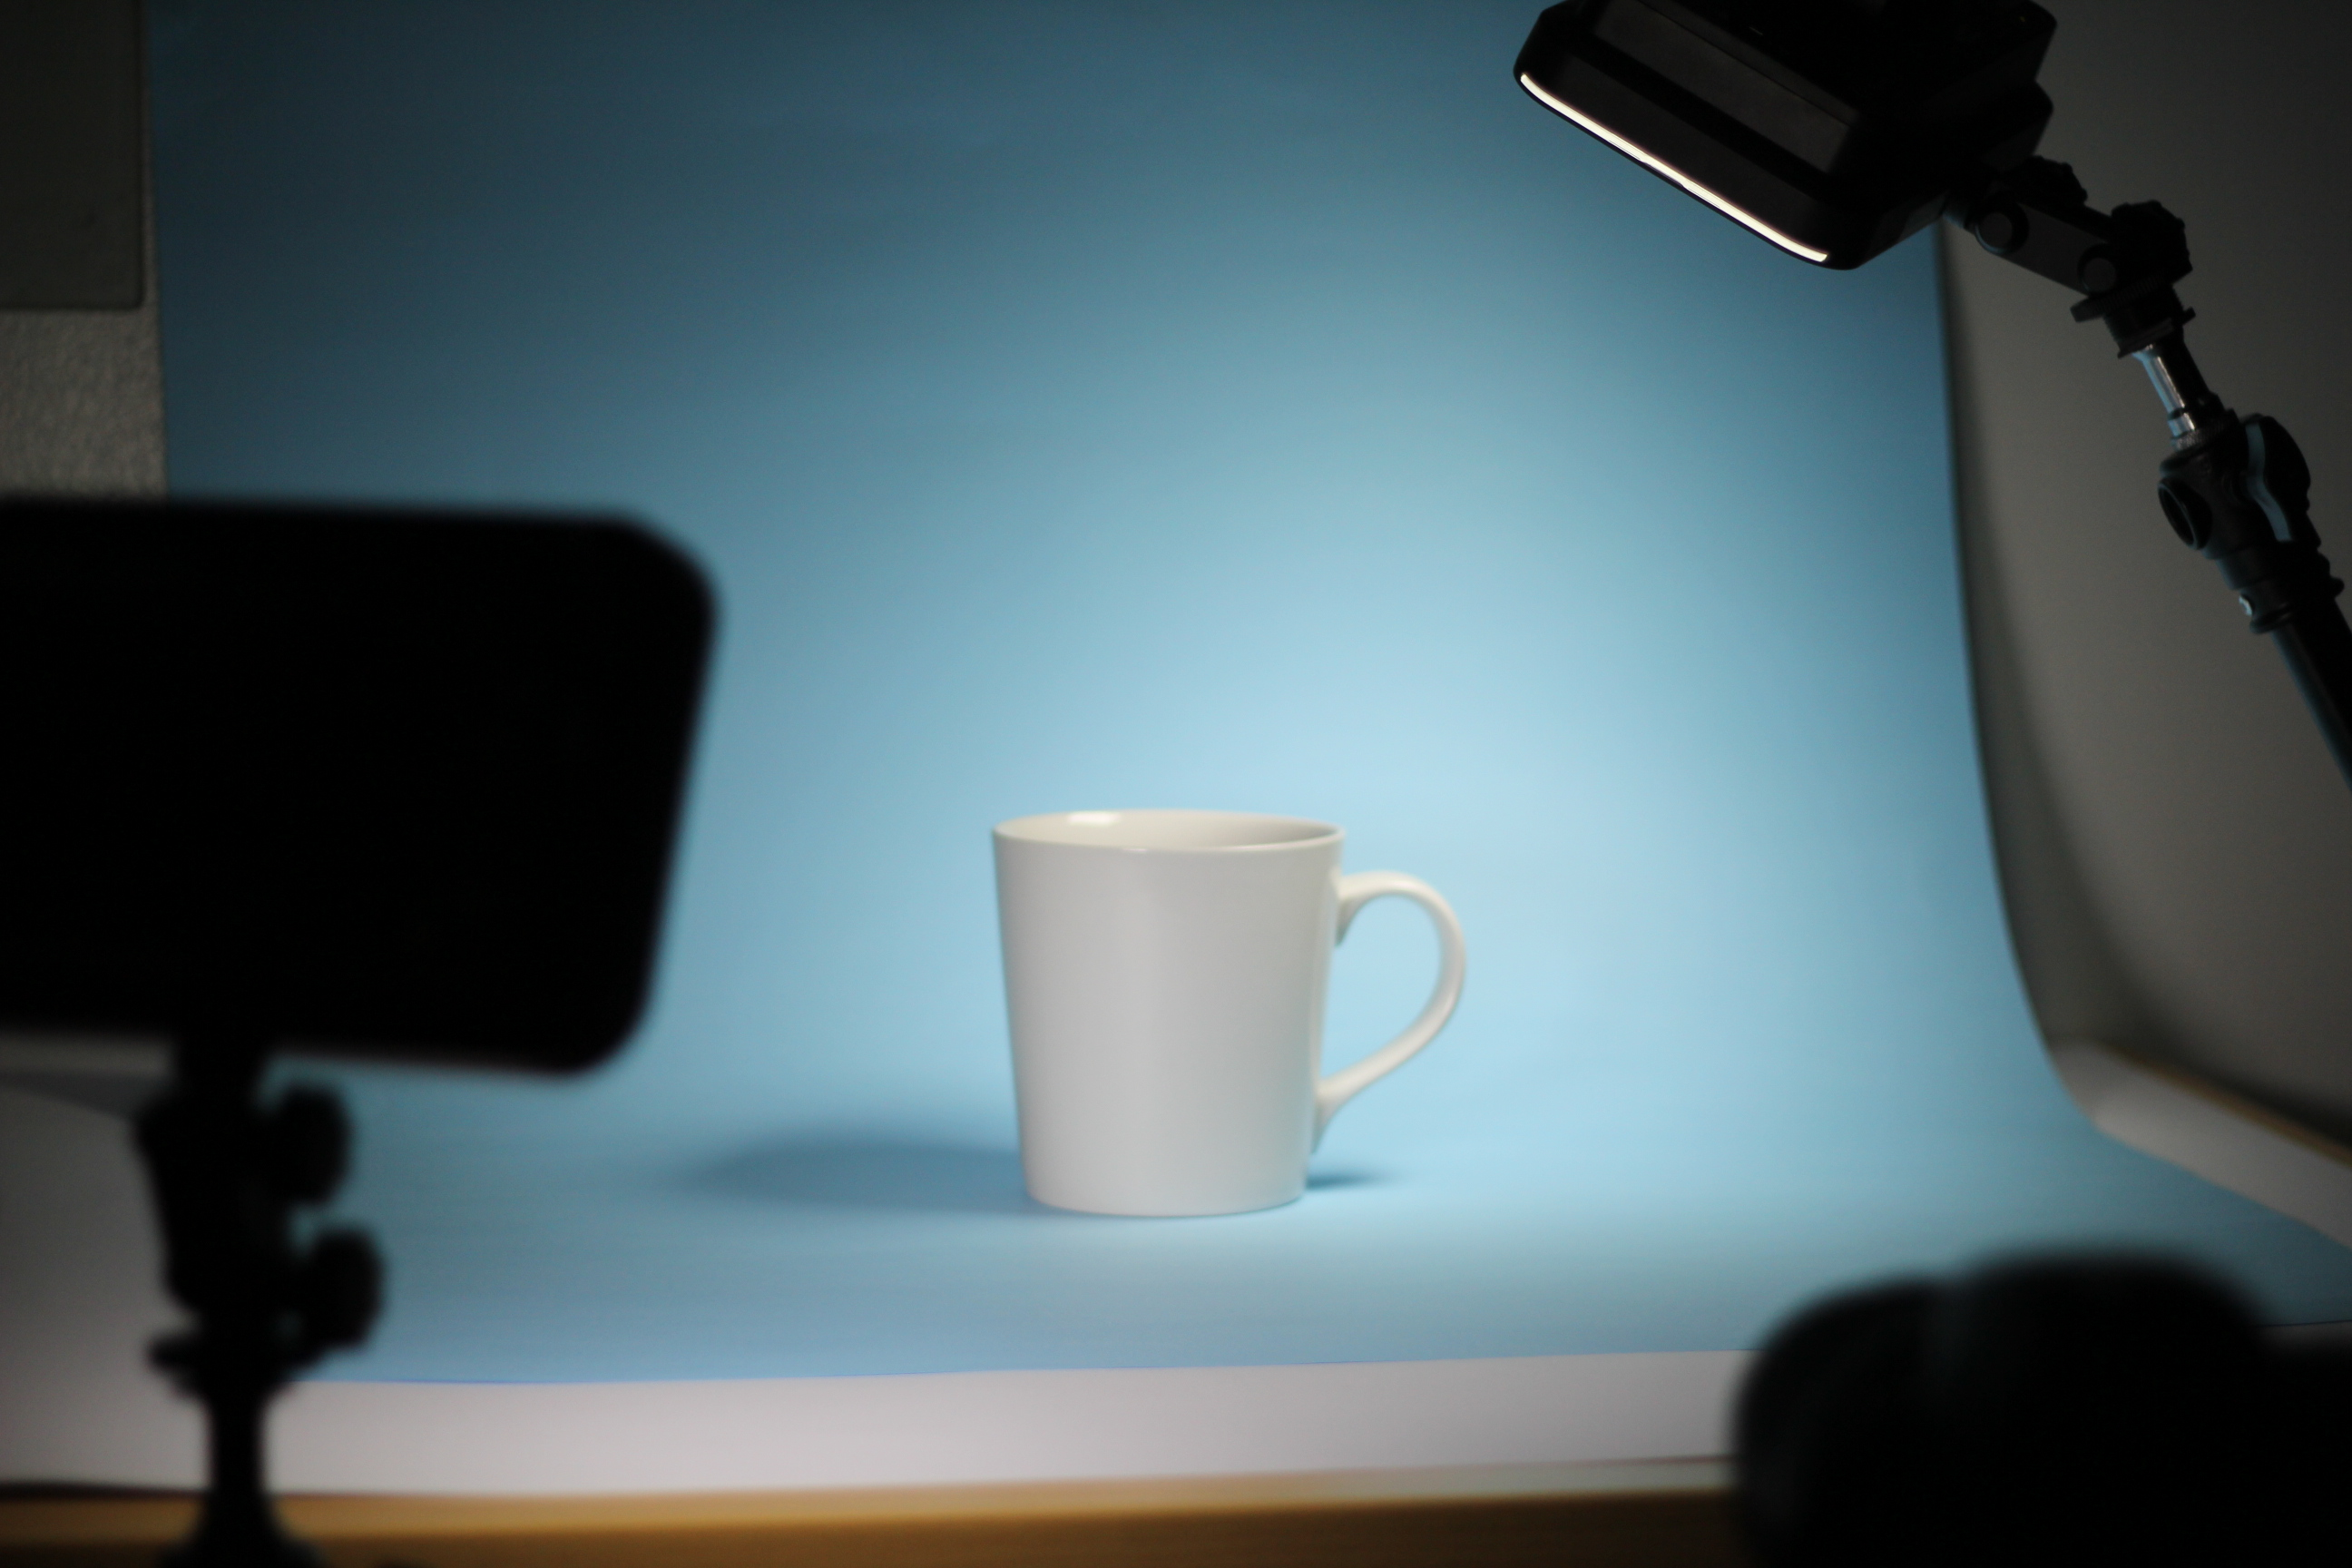 Mockup mug in a spotlight